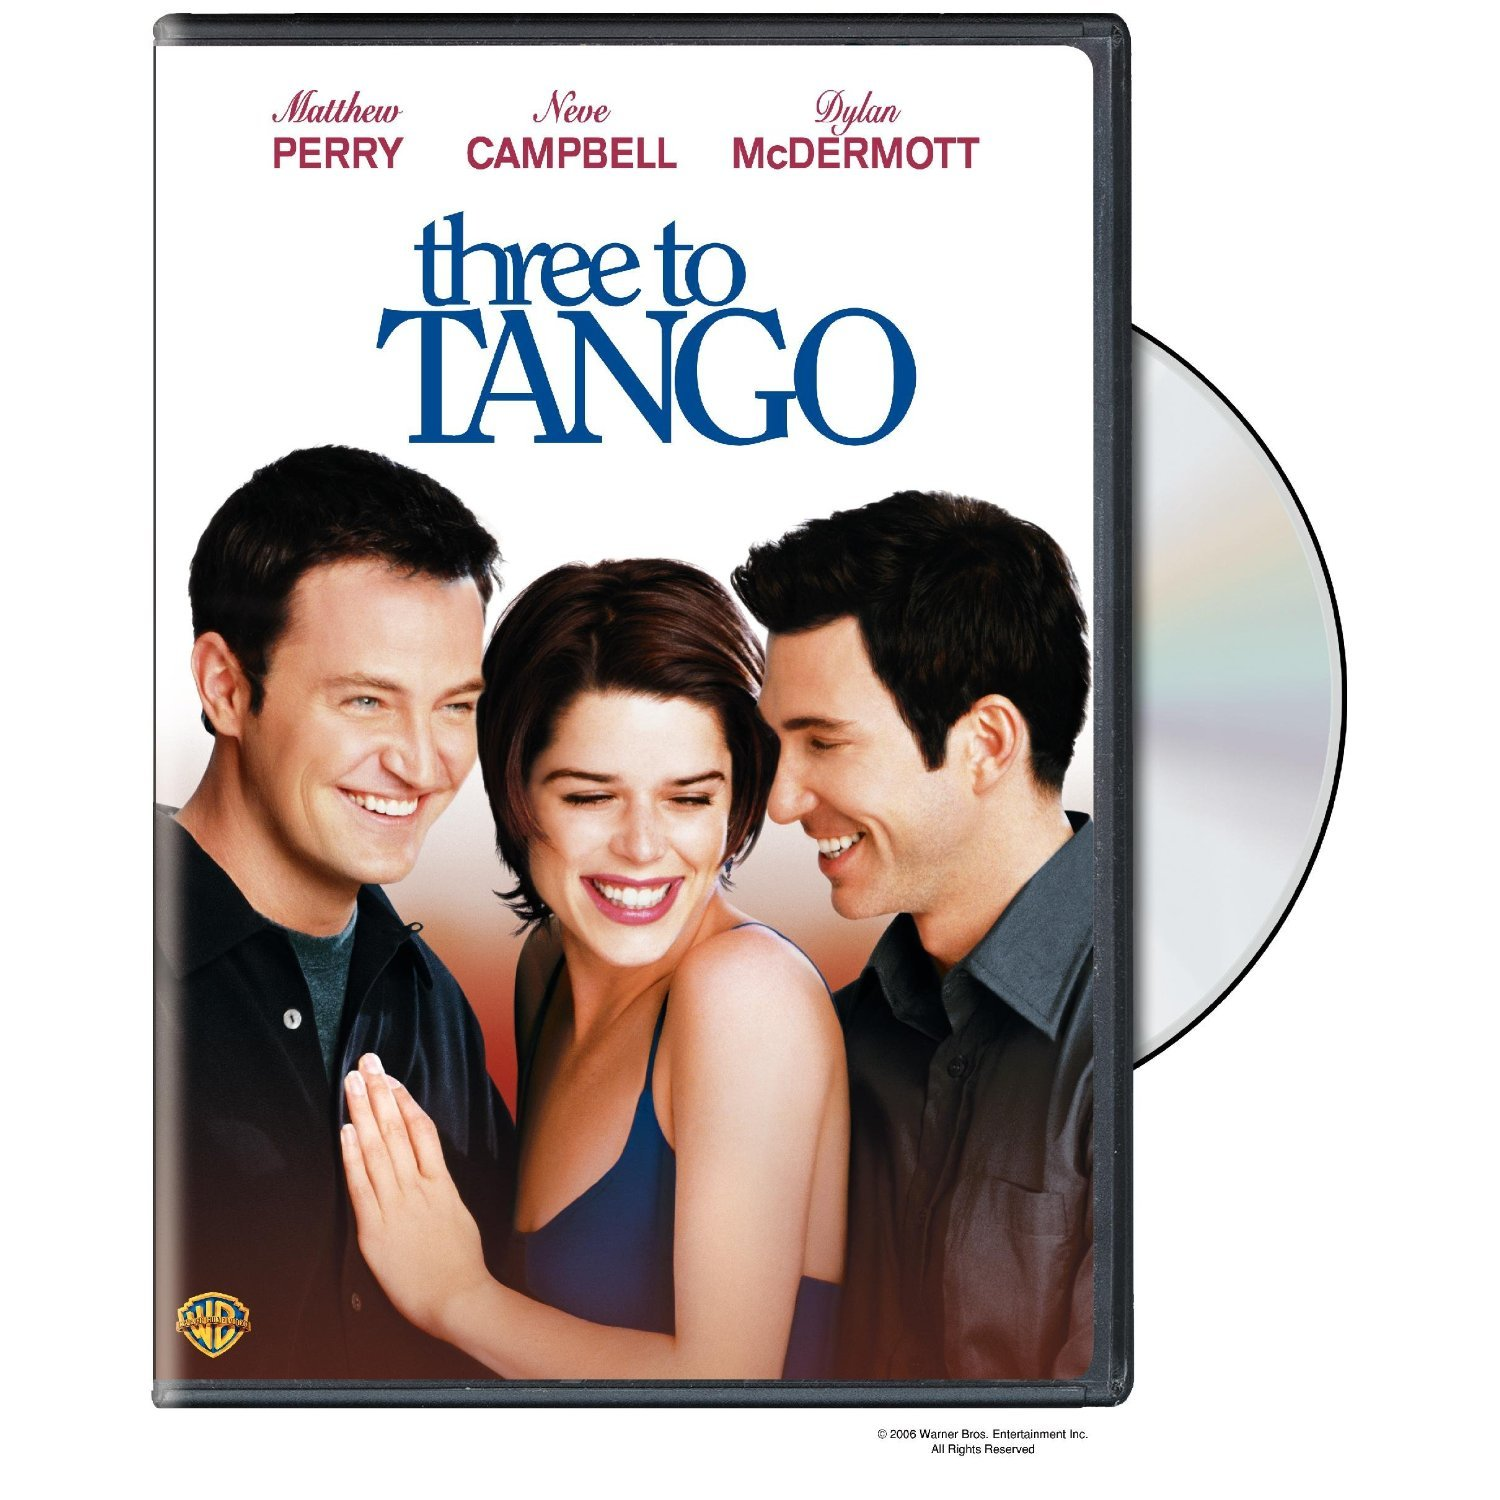 Three to Tango DvD starring Matthew Perry, Neve Campbell